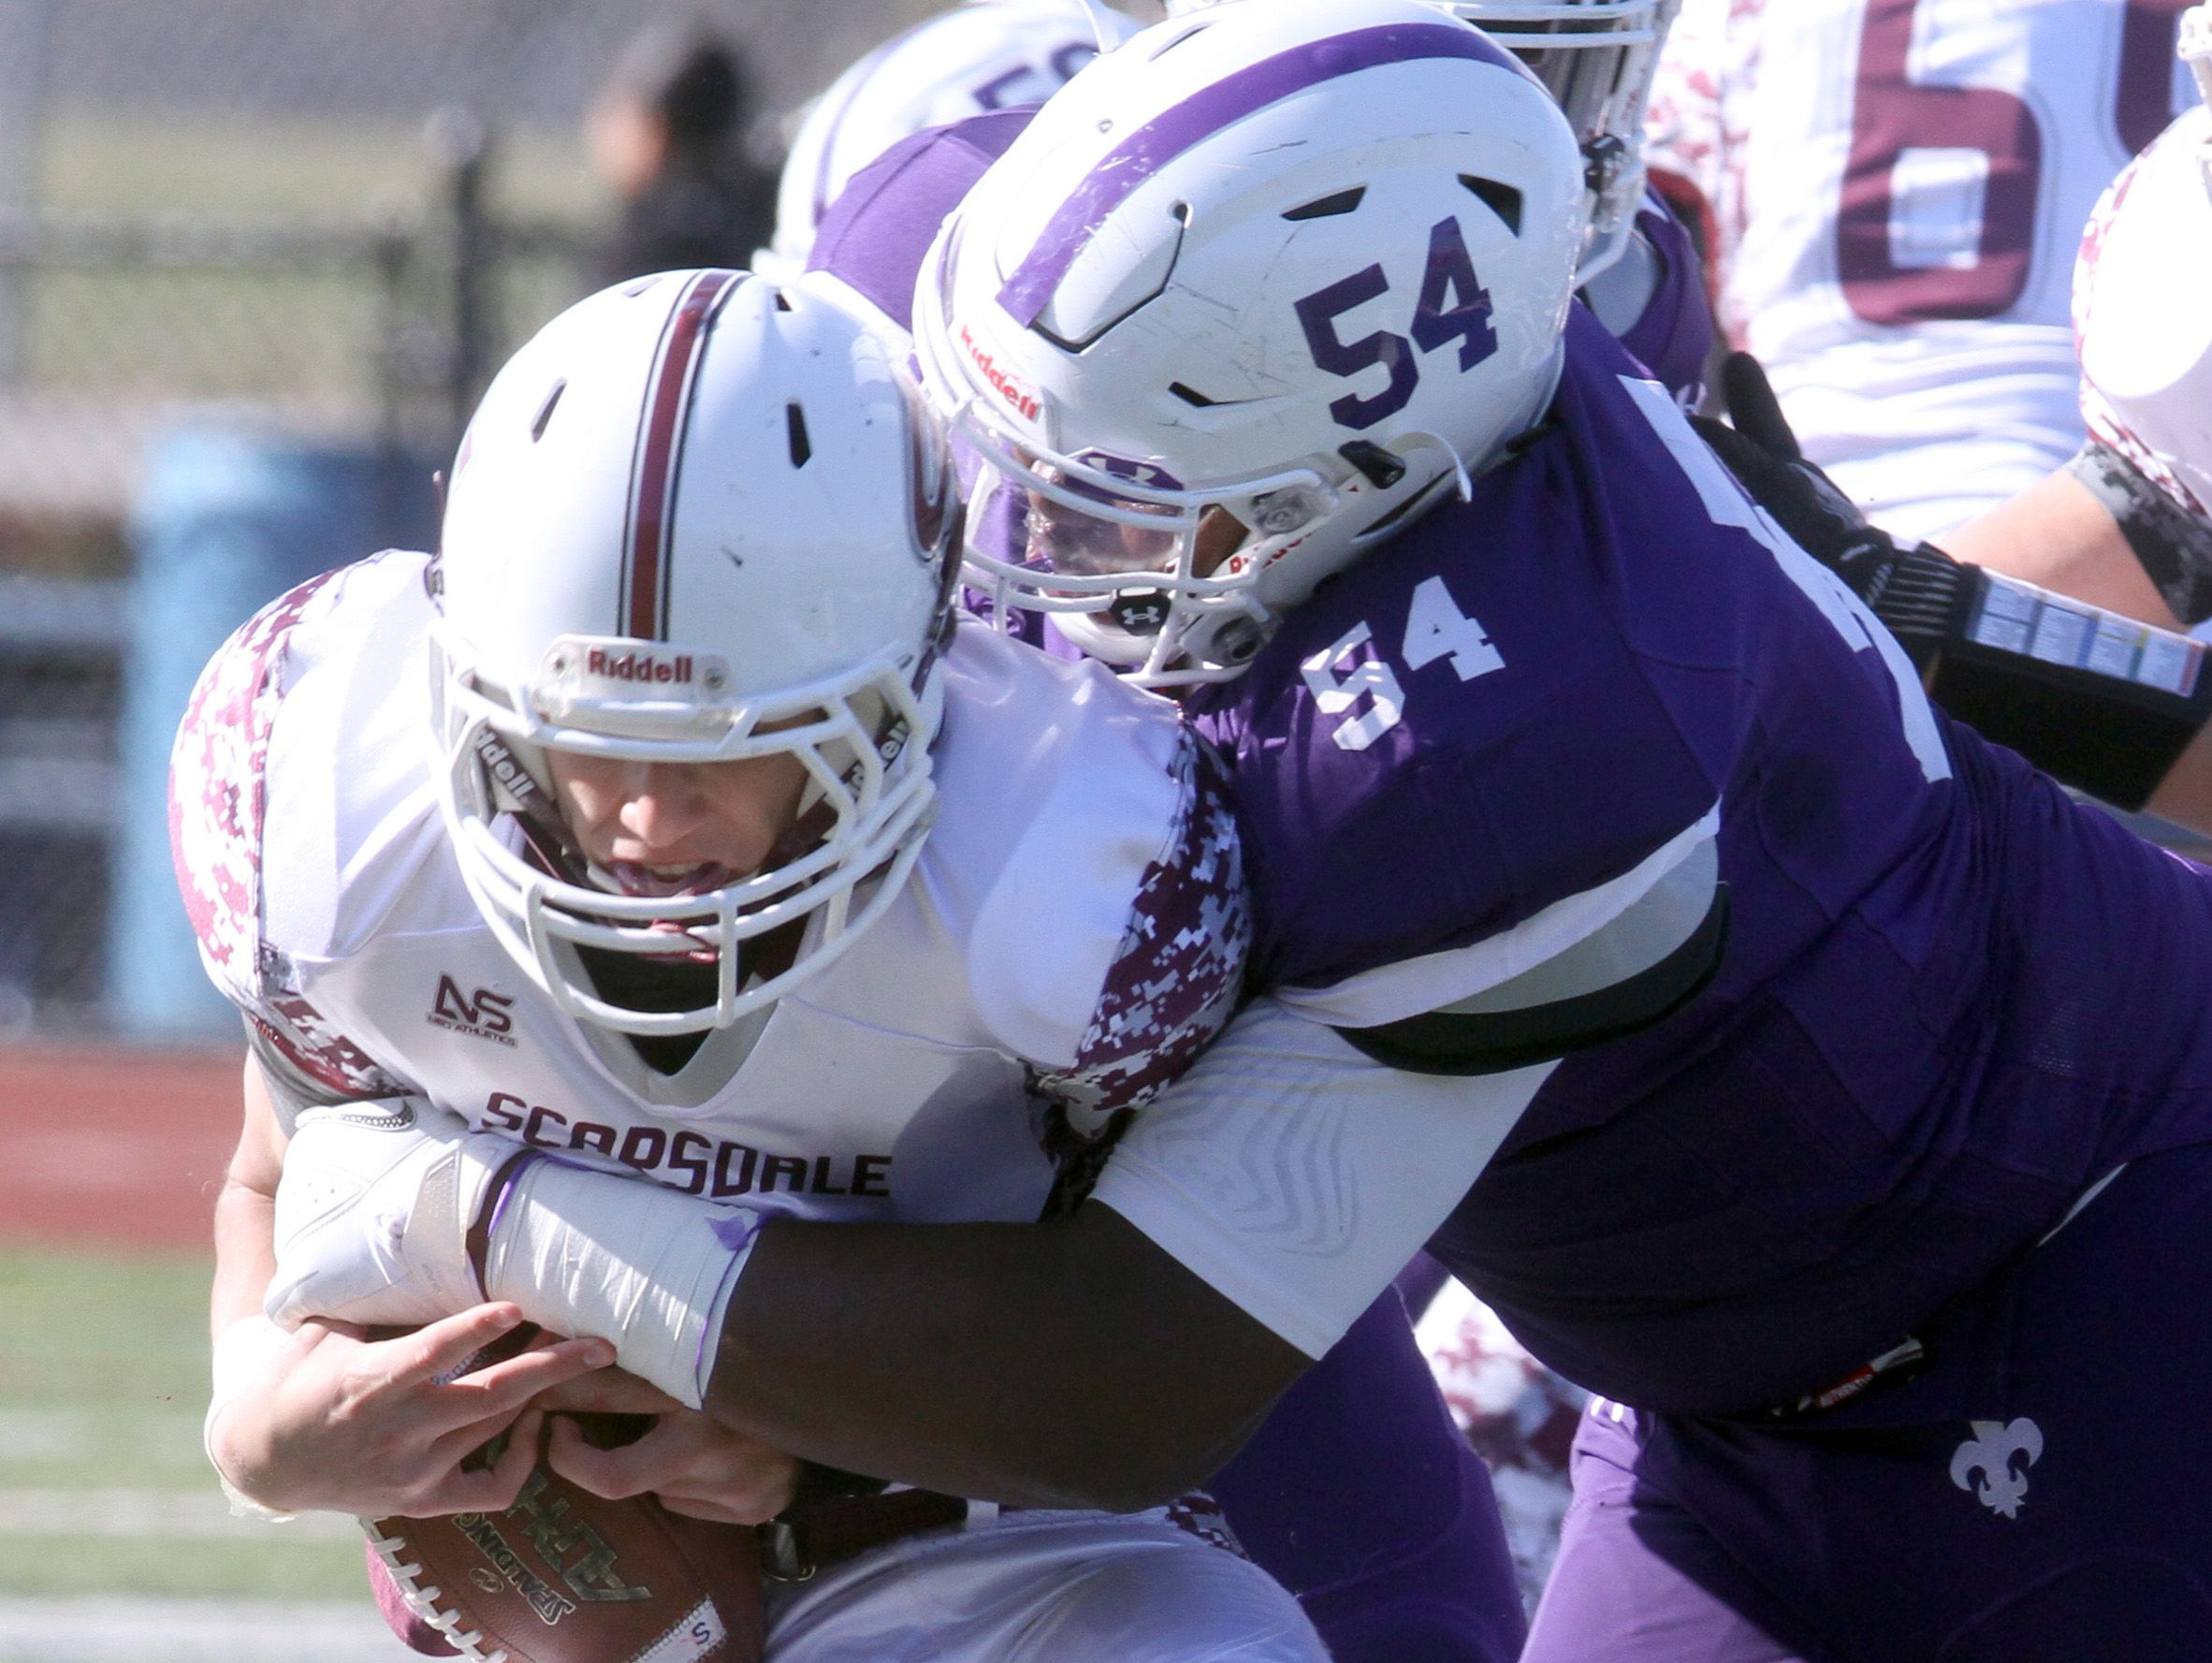 New Rochelle's Cedrice Paillant wraps up Scarsdale quarterback Barry Klein during the Section 1 Class AA football championship against Scarsdale at Mahopac High School Nov. 6, 2016. Scarsdale defeated Scarsdale 41-13 in